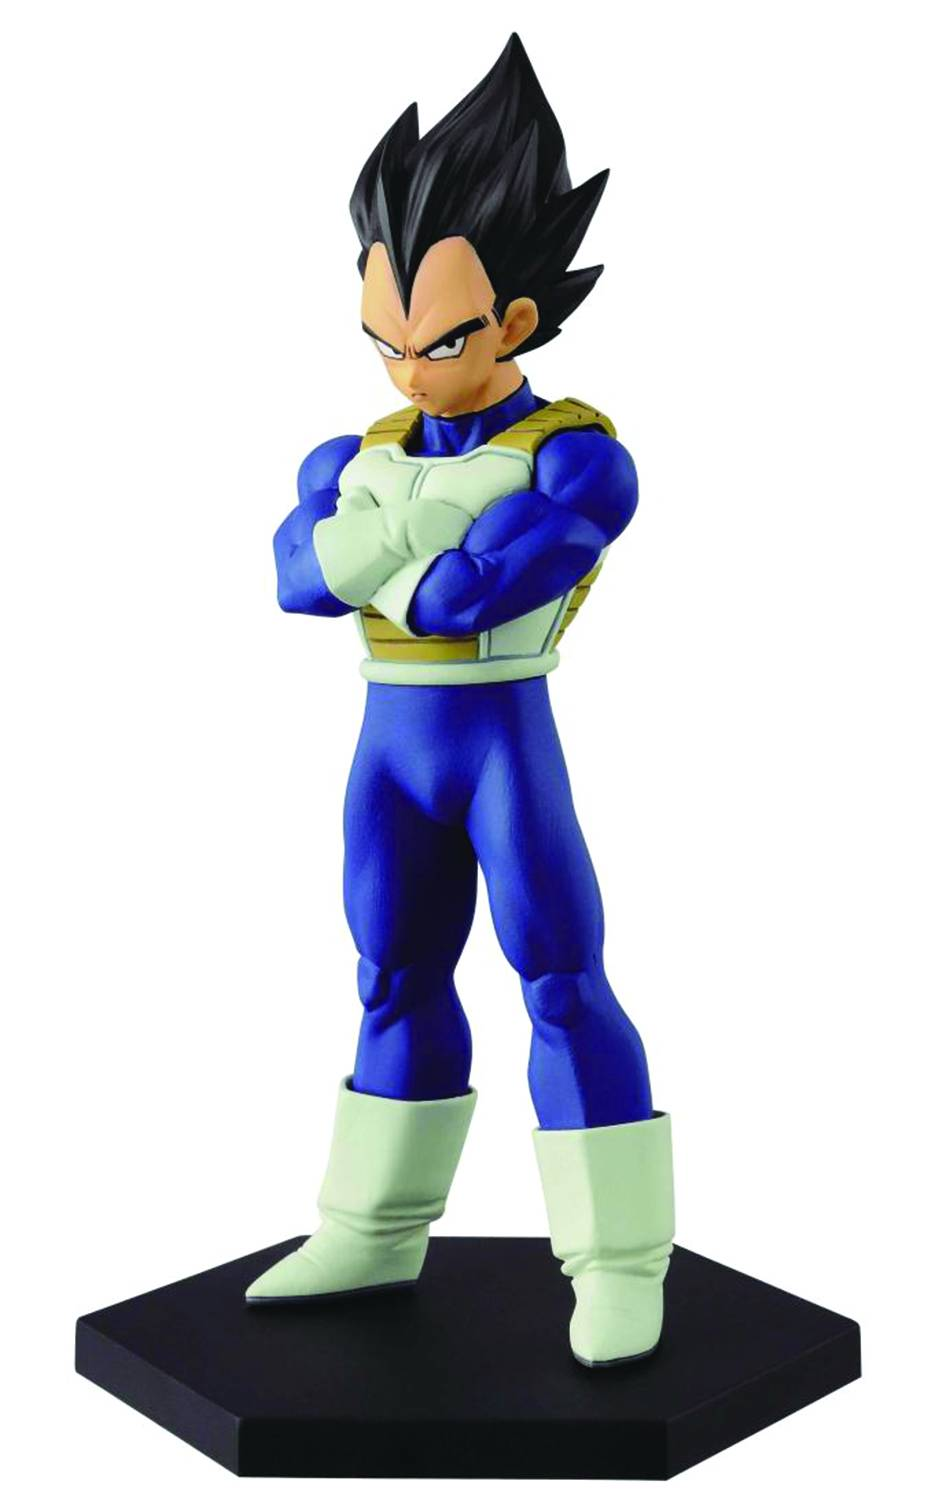 Dragonball Z DXF Chozousyu Vol 1 Vegeta Figure